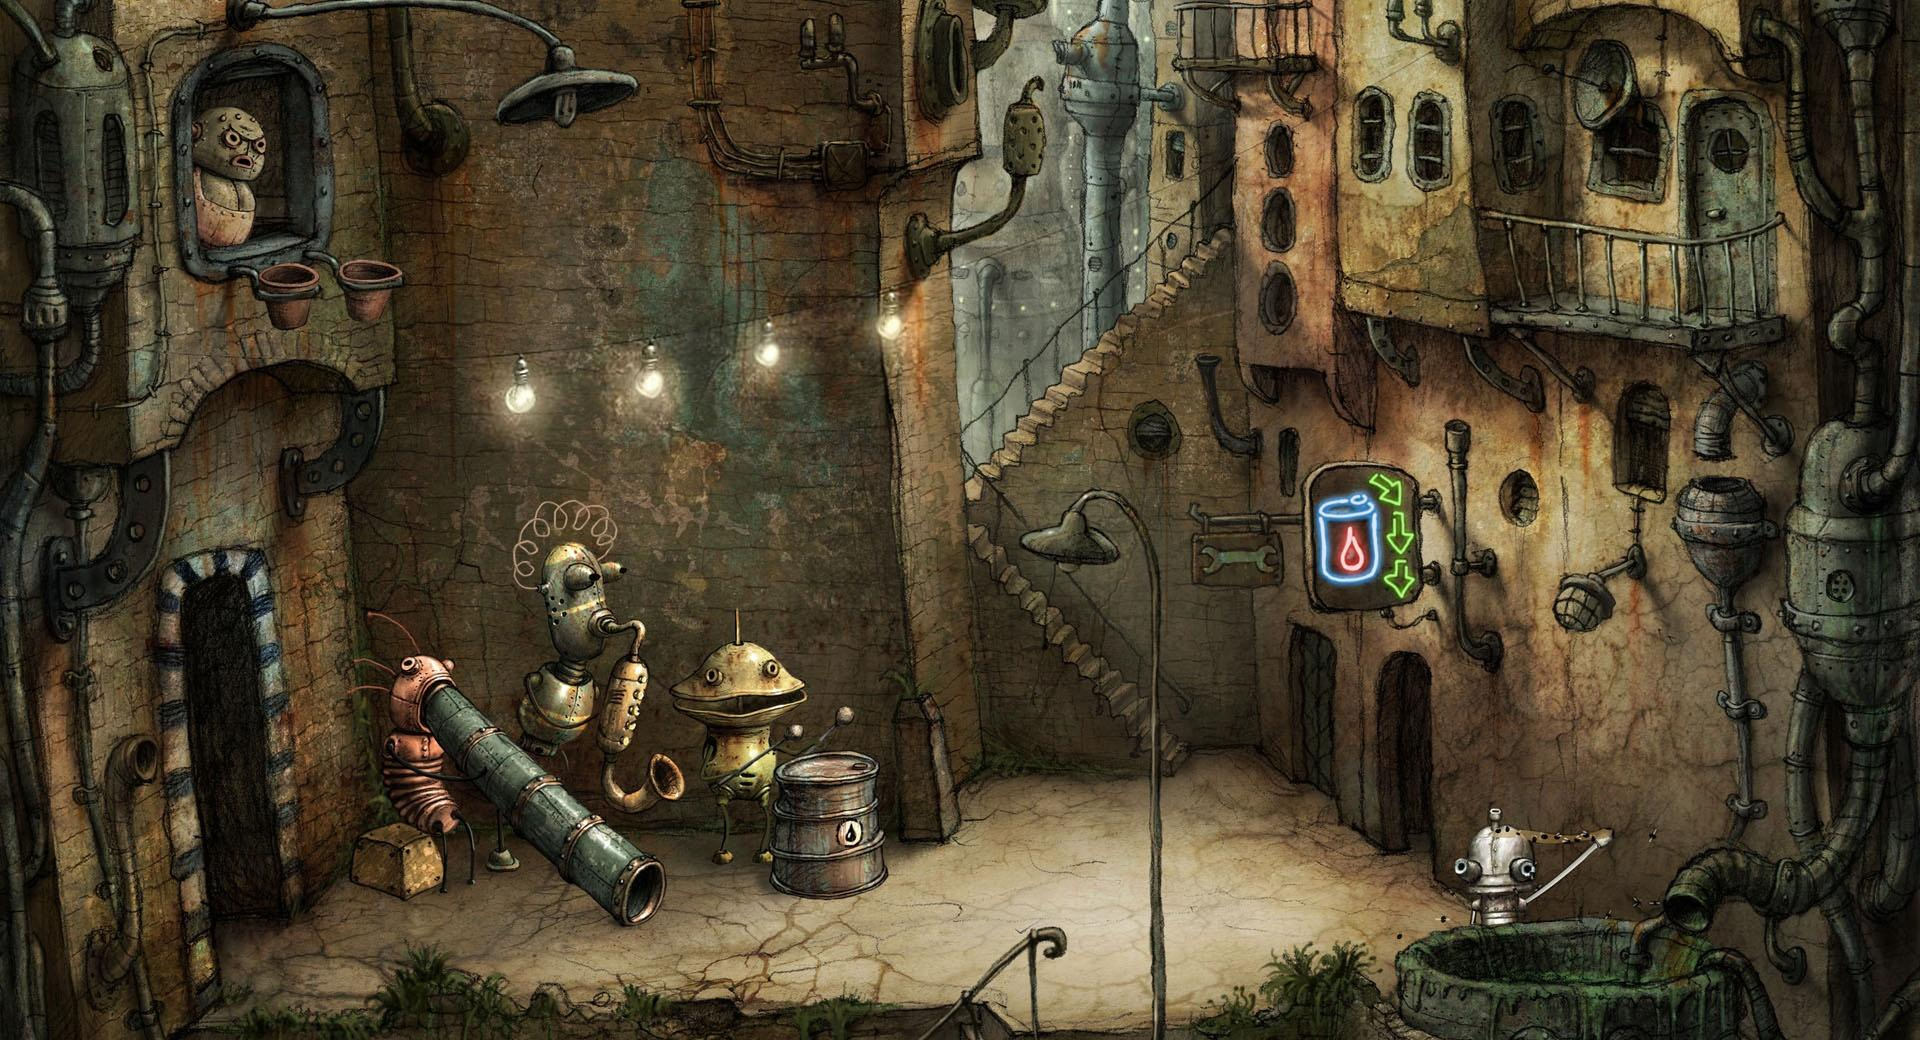 Alley, Machinarium Game wallpapers HD quality